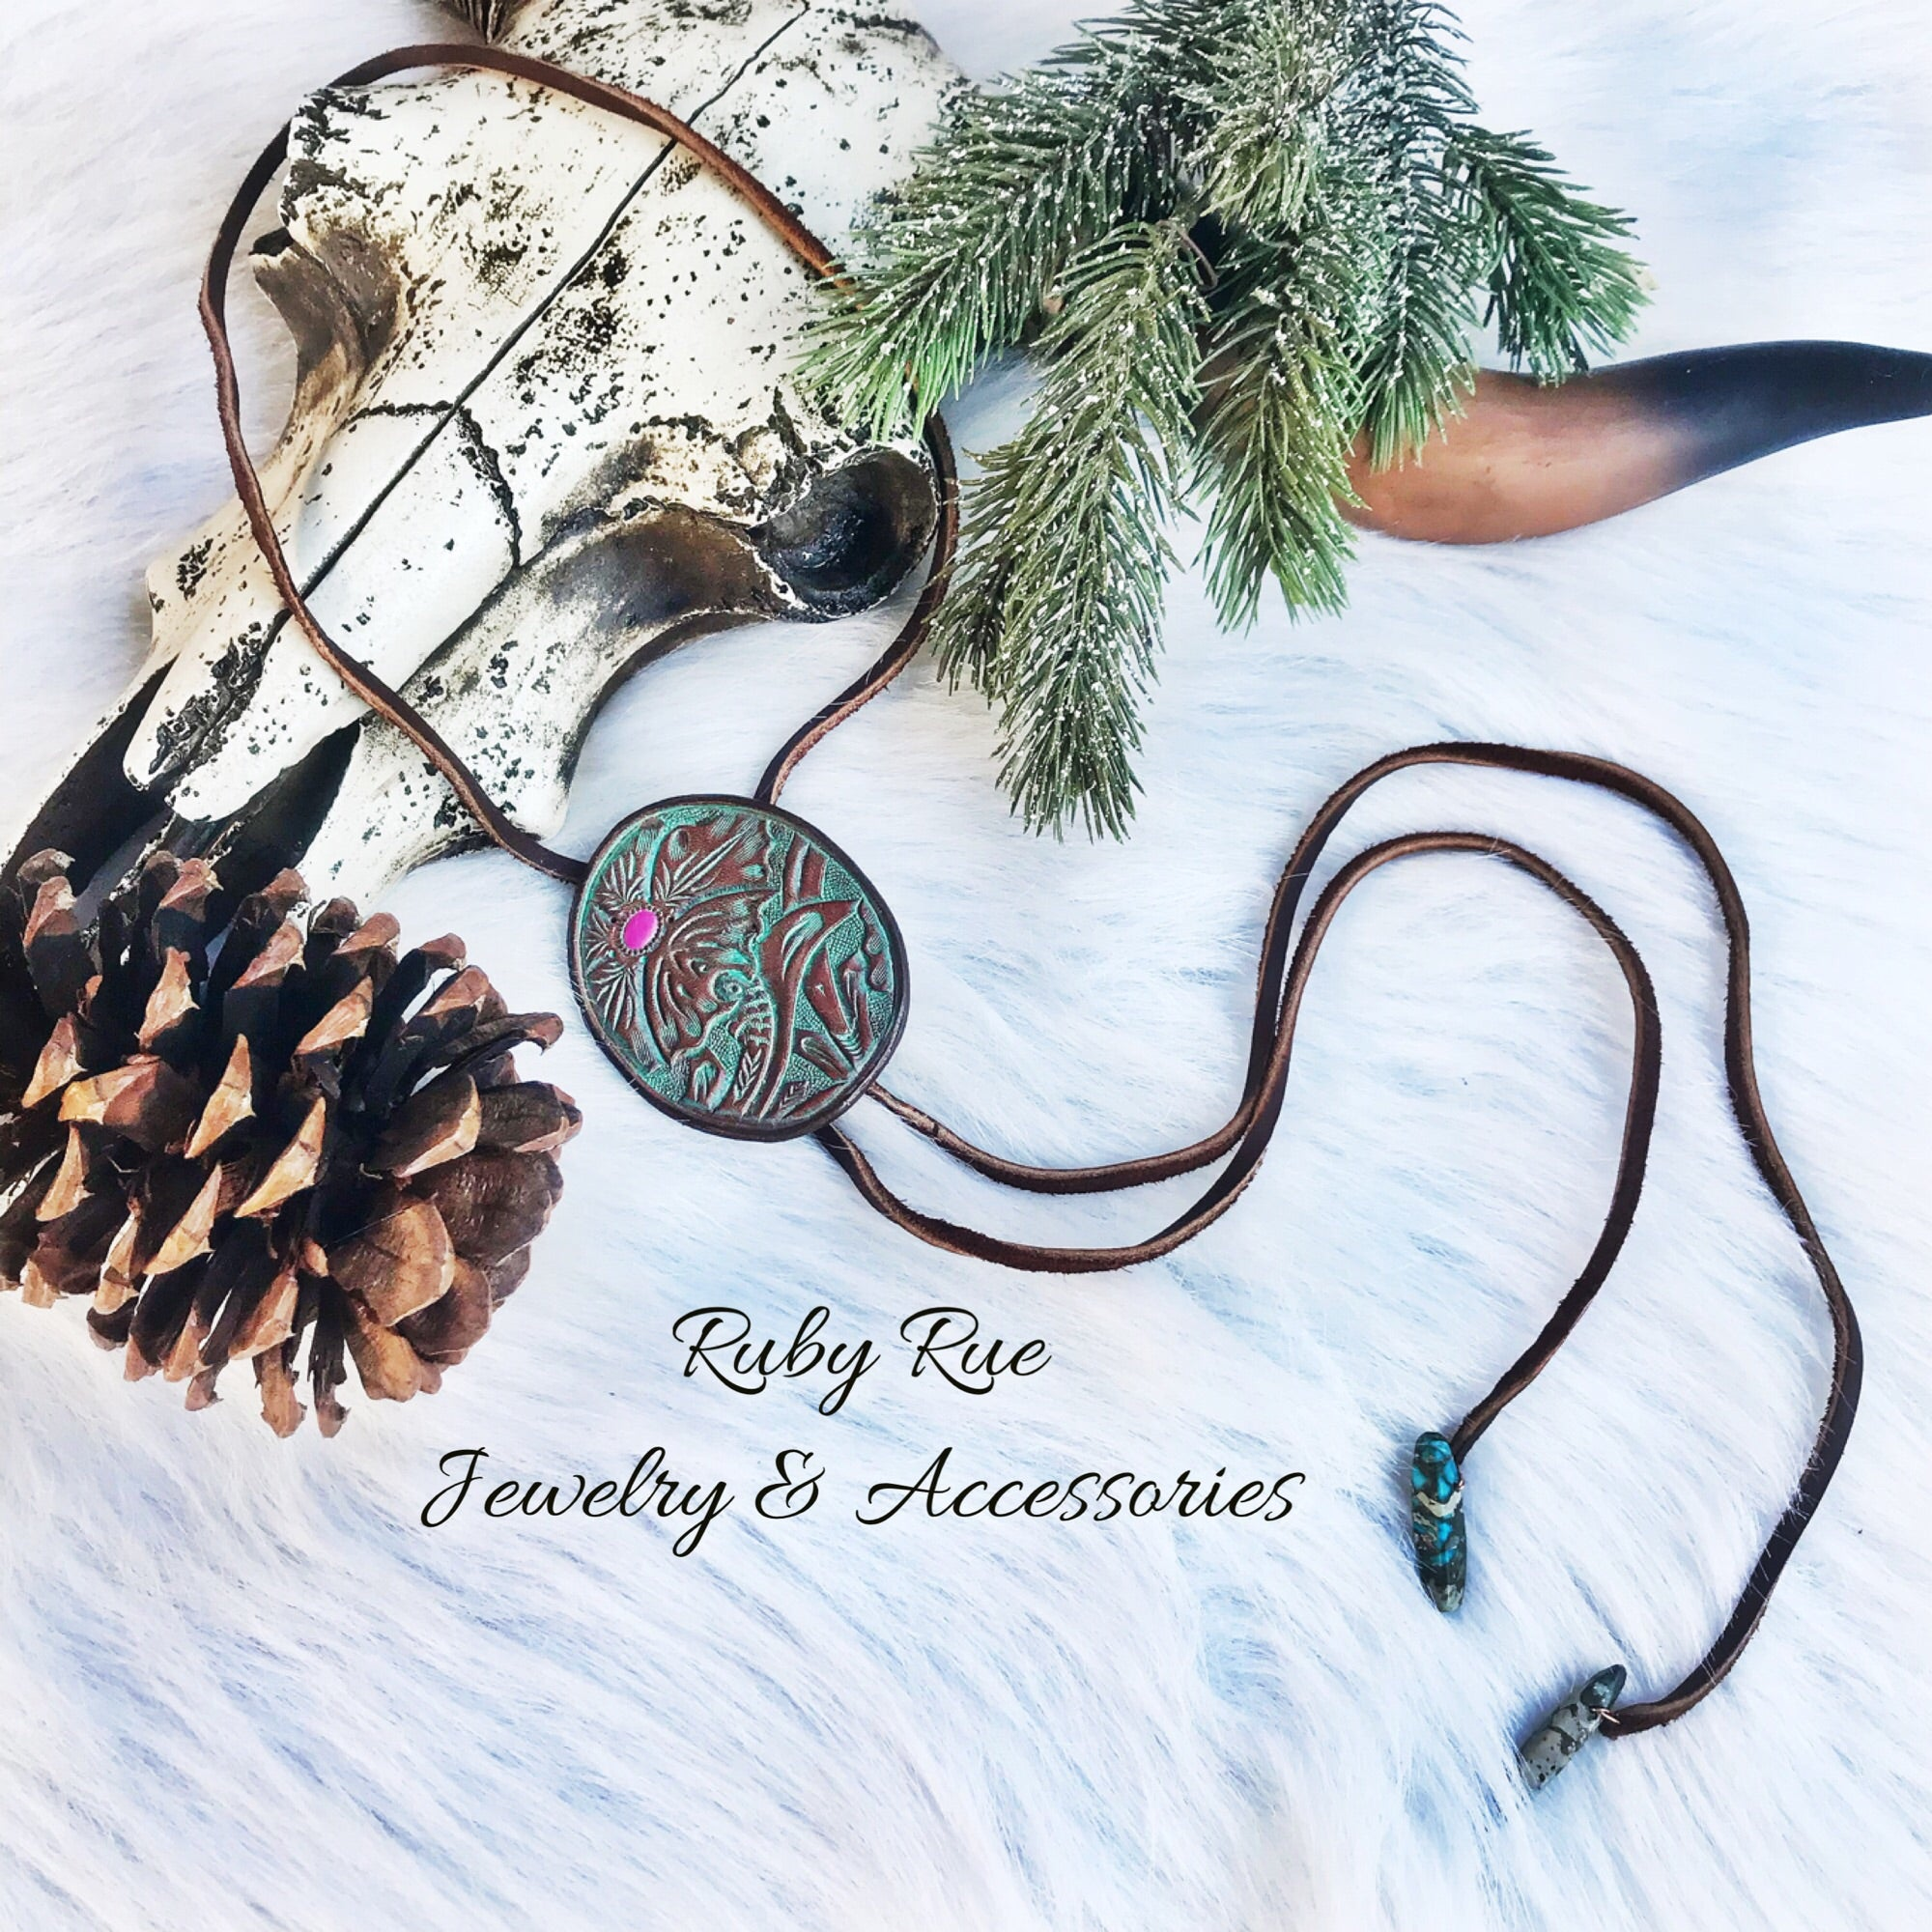 Floral Leather Bolo - Ruby Rue Jewelry & Accessories